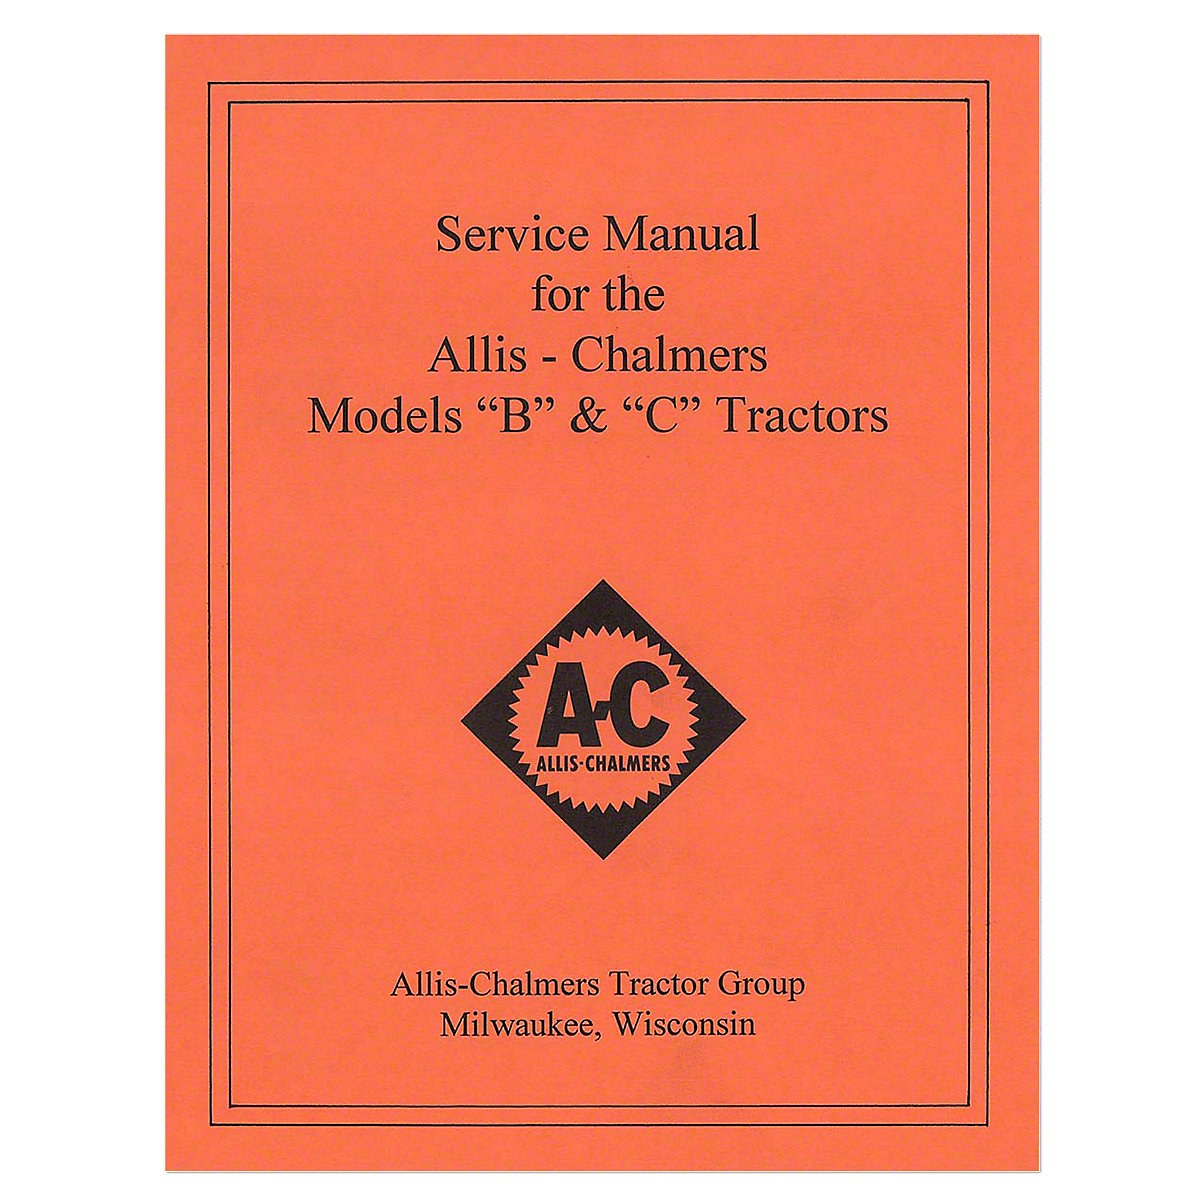 REP036?$lg$ ac b parts manual allis chalmers c parts manual allis b or c